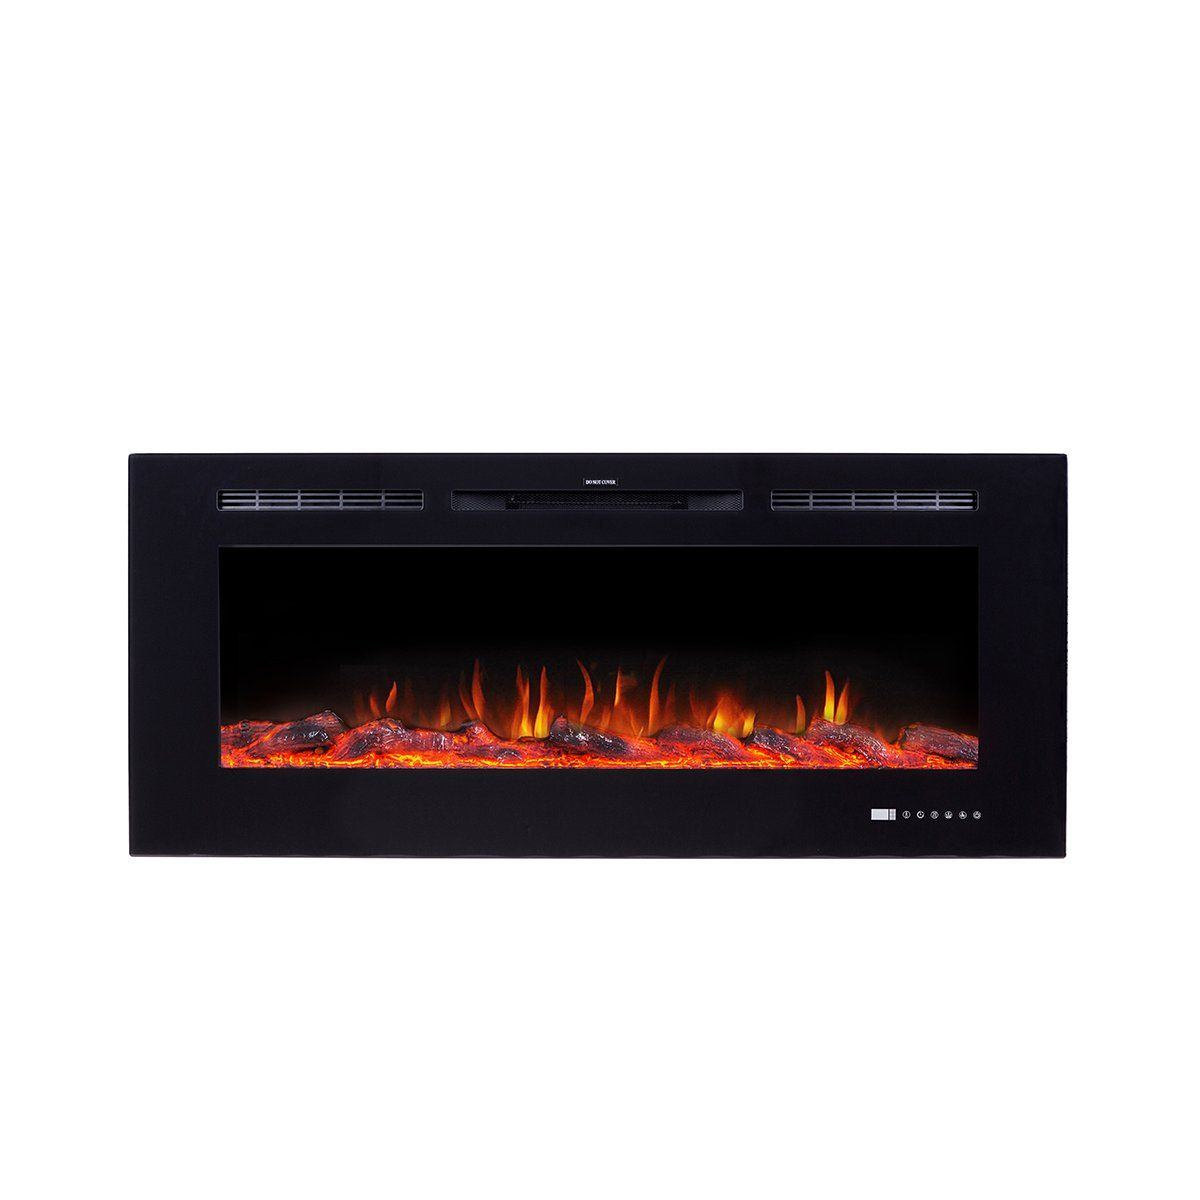 Flameline Dannis 50 750w 1500w Inwall Recessed Electric Fireplace